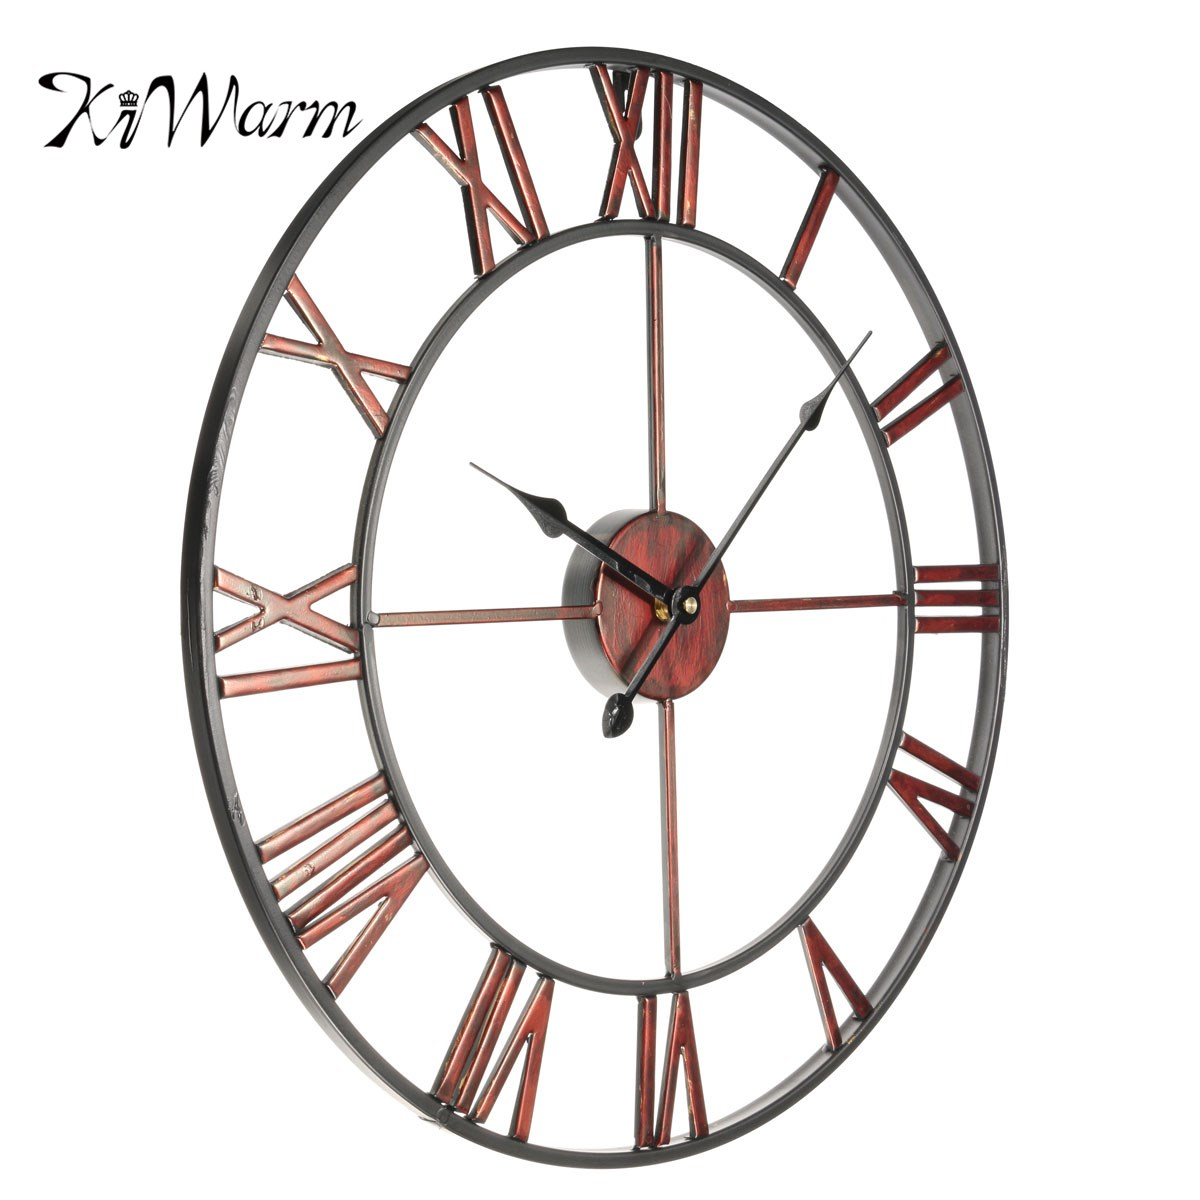 KiWarm Classic Large Metal Wrought Iron Vintage Wall Clock Provincial Roman Numerals Art Gear Decoration for Home Craft